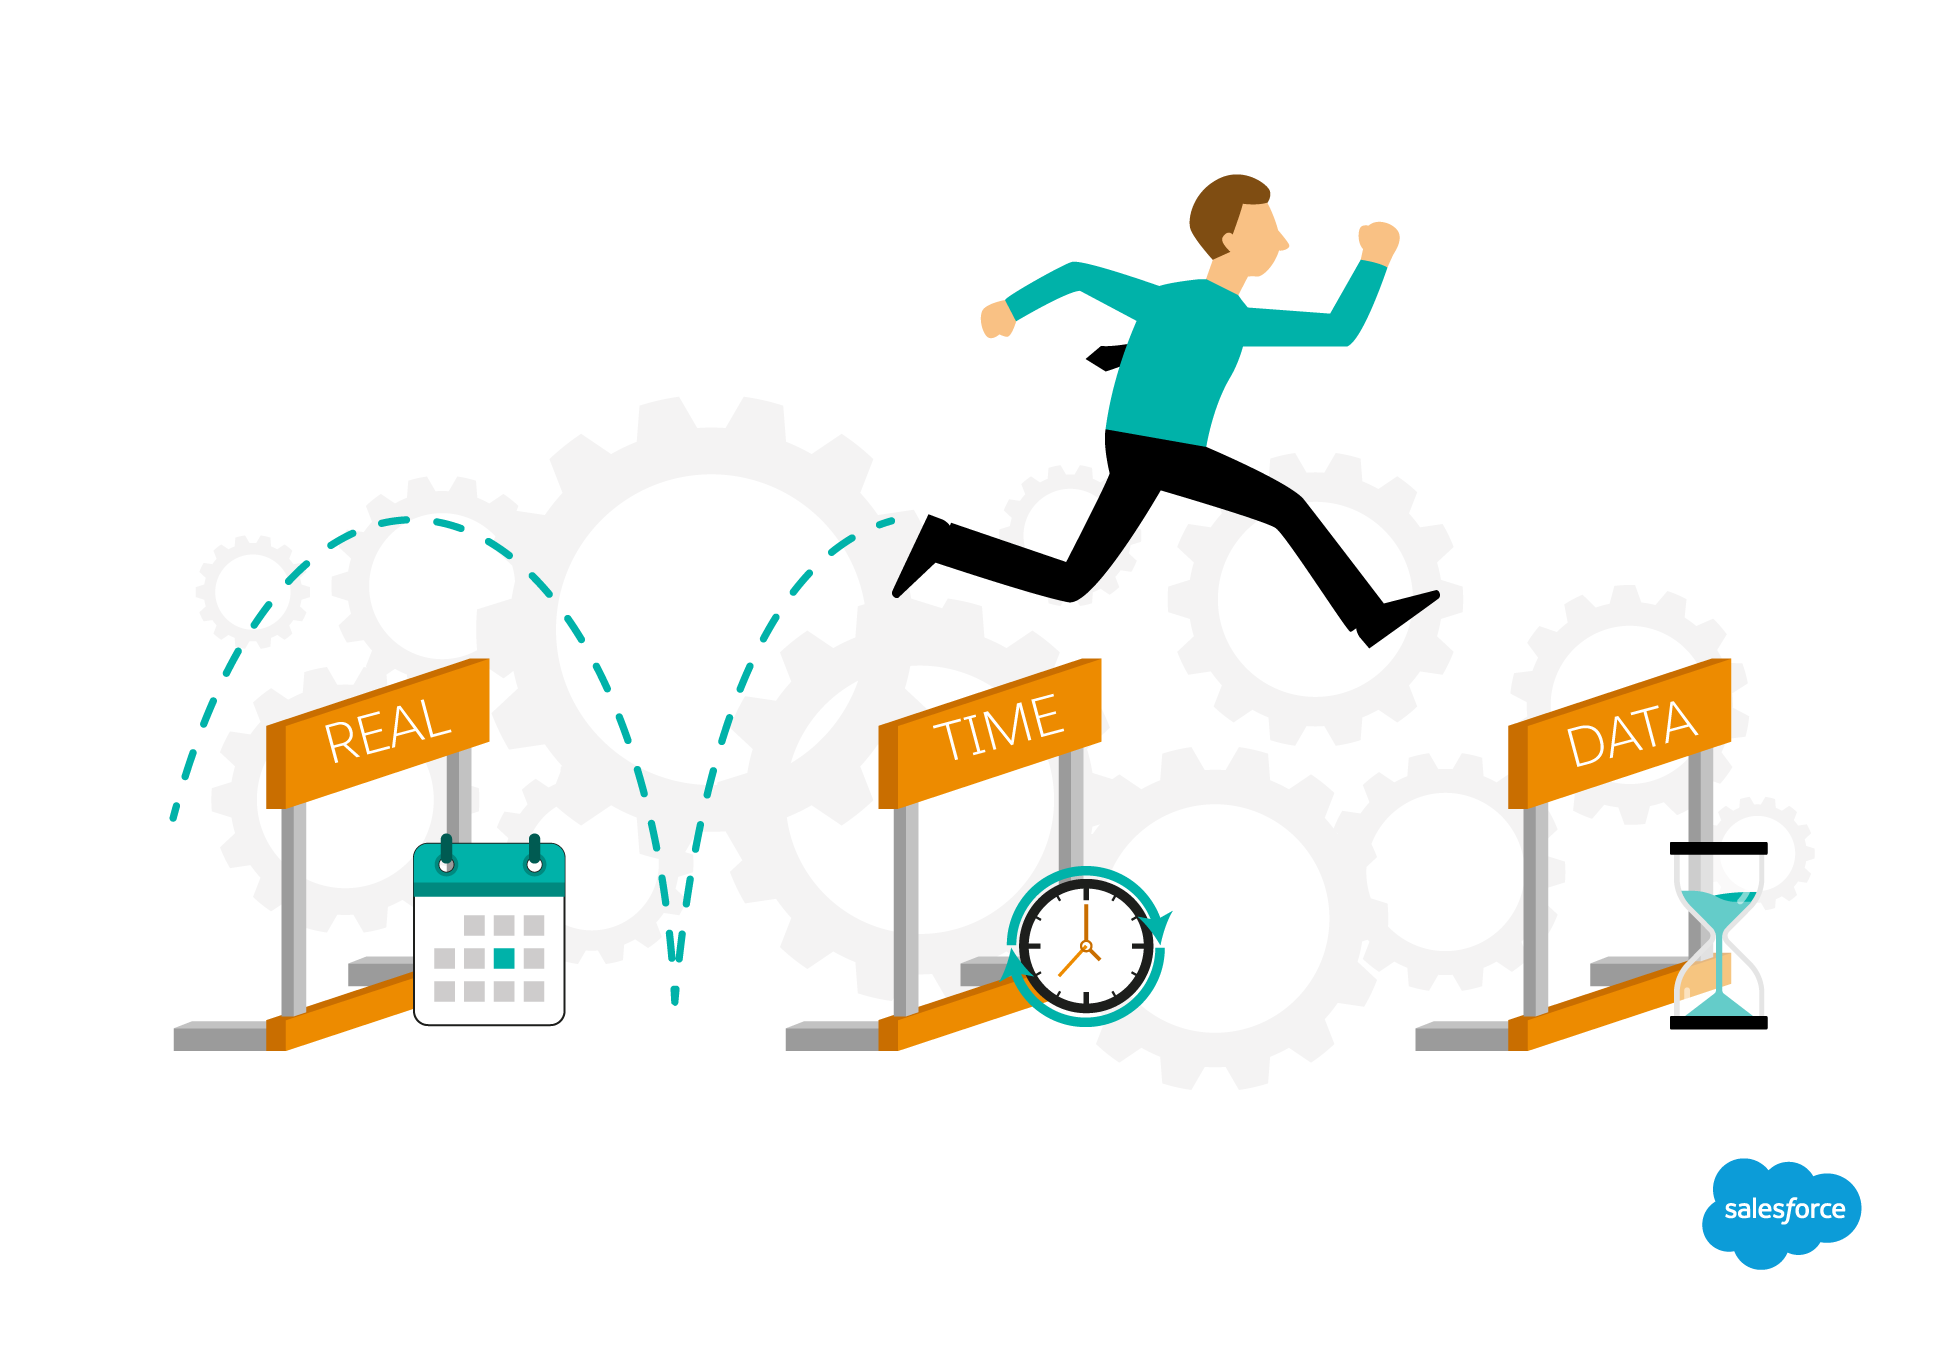 learn how to overcome real time data challenges